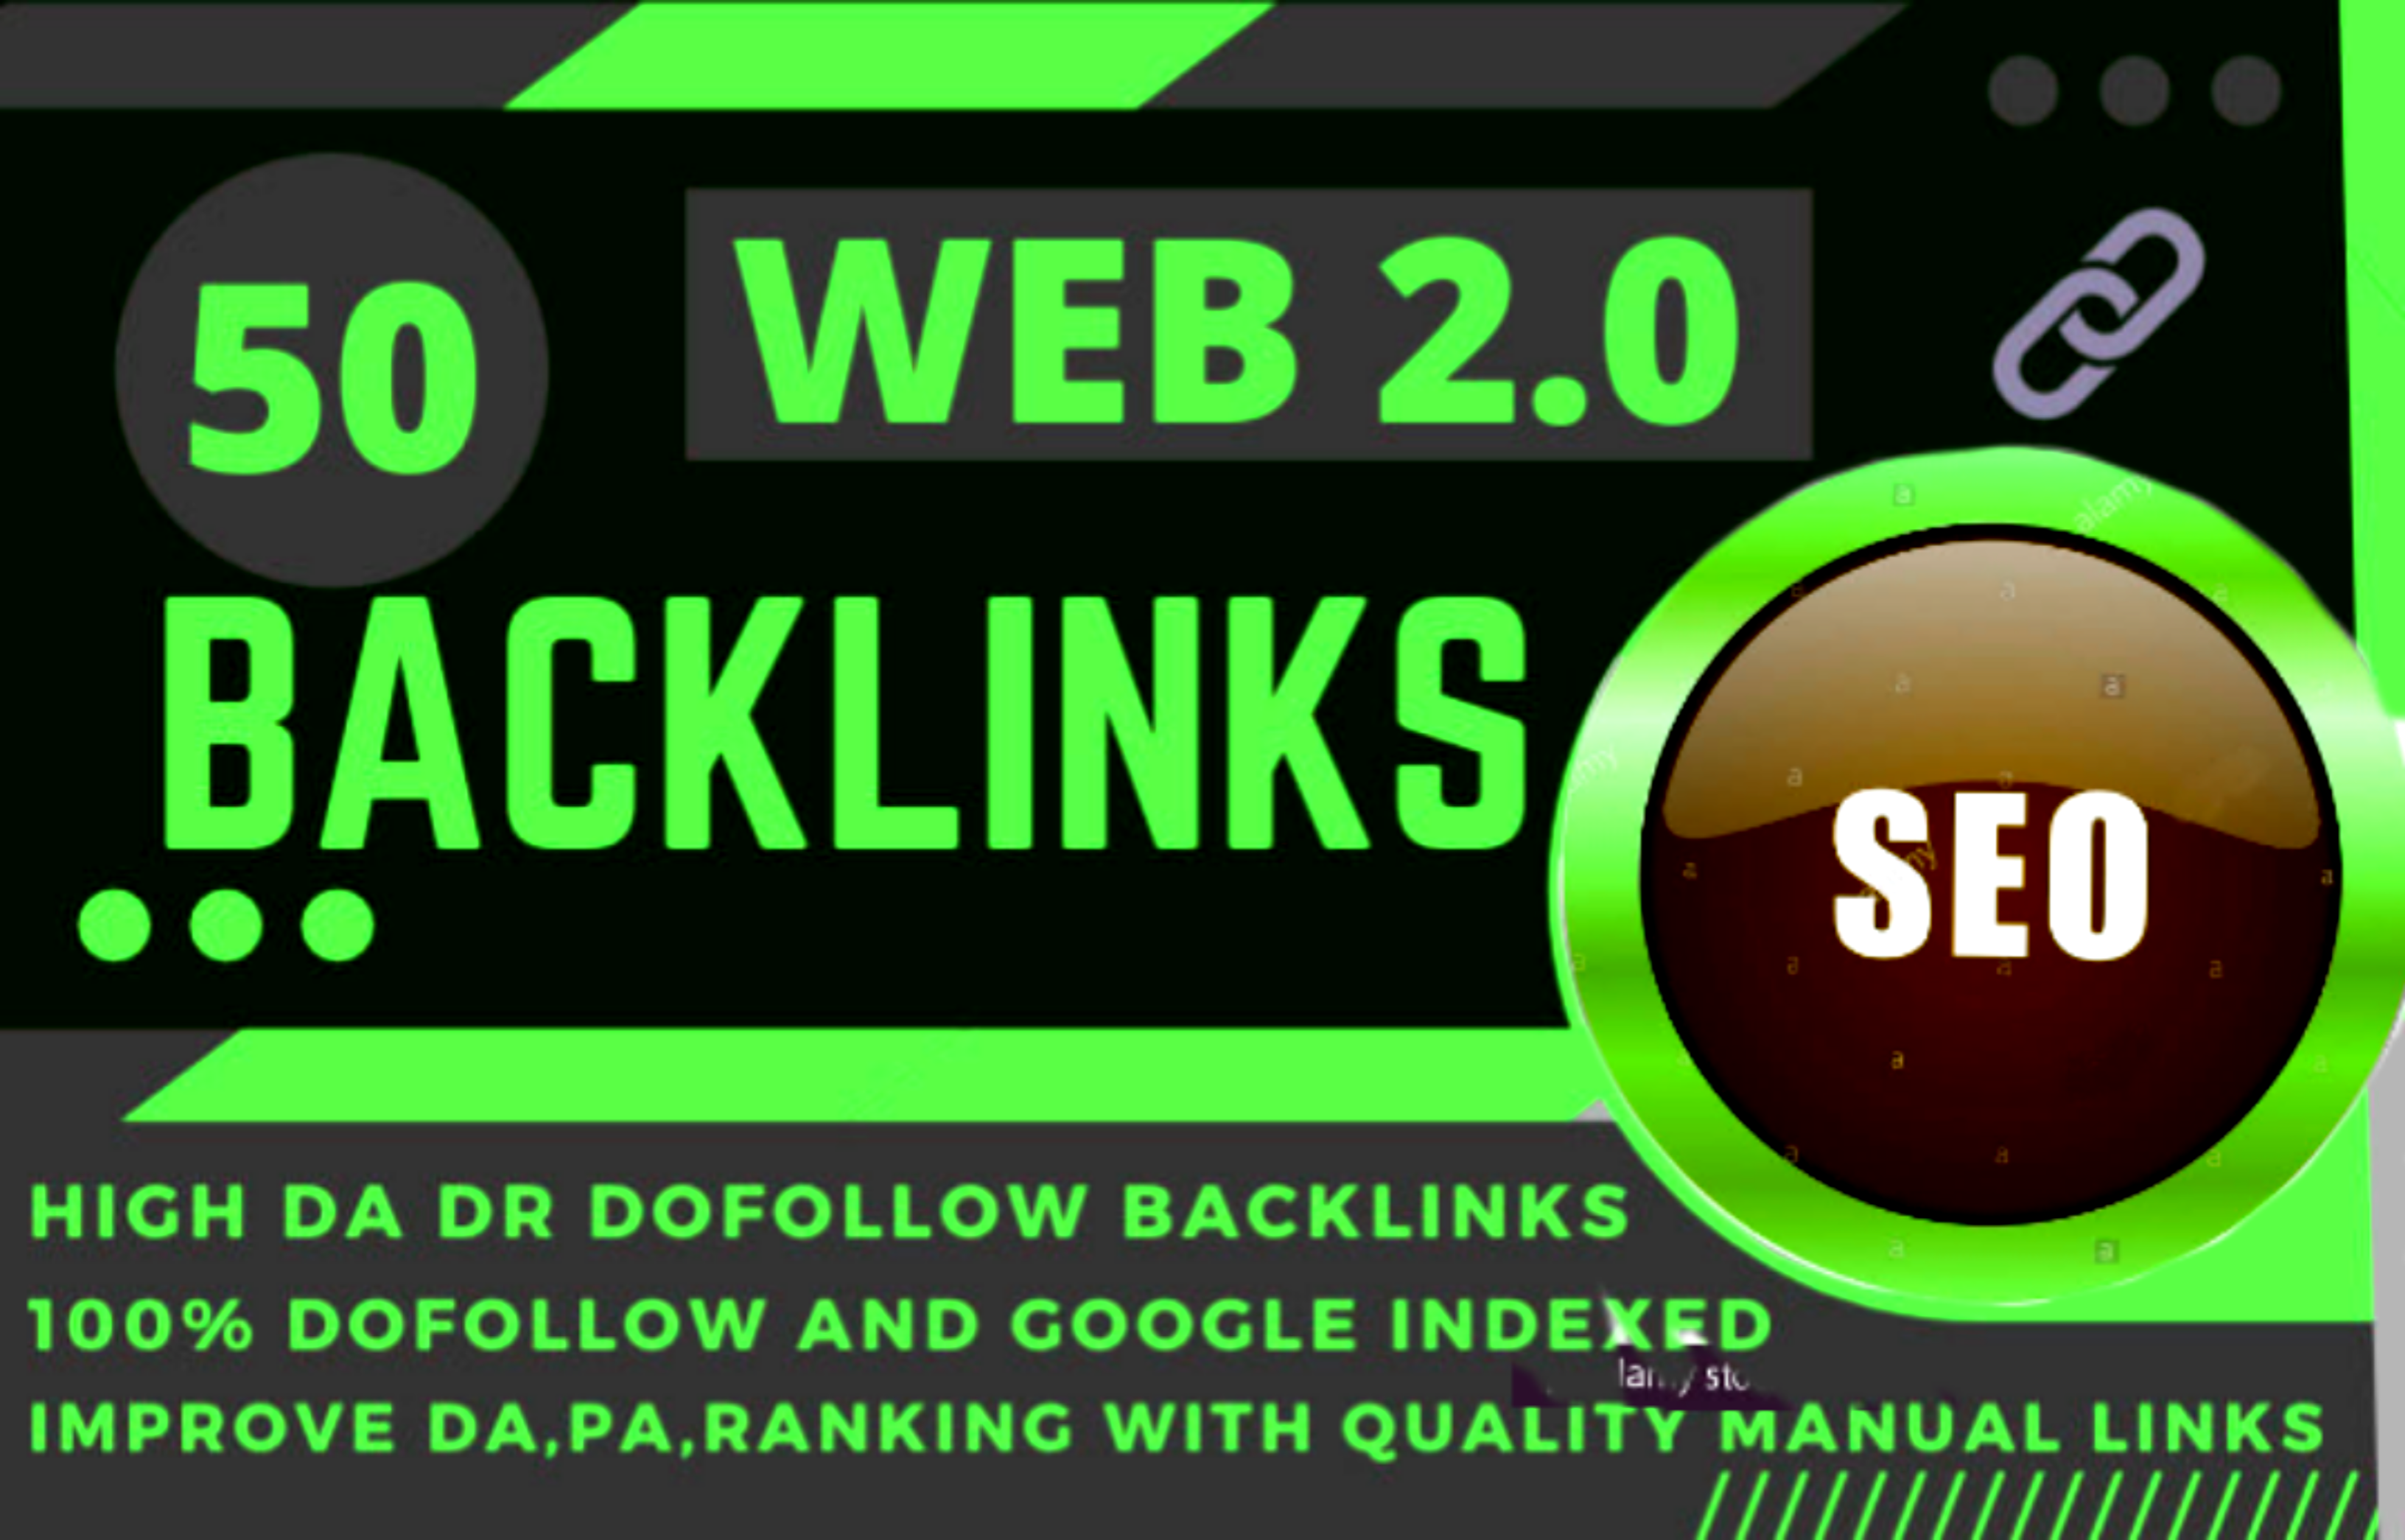 I will make you manually 50 web 2.0 with High DA permanent backlinks